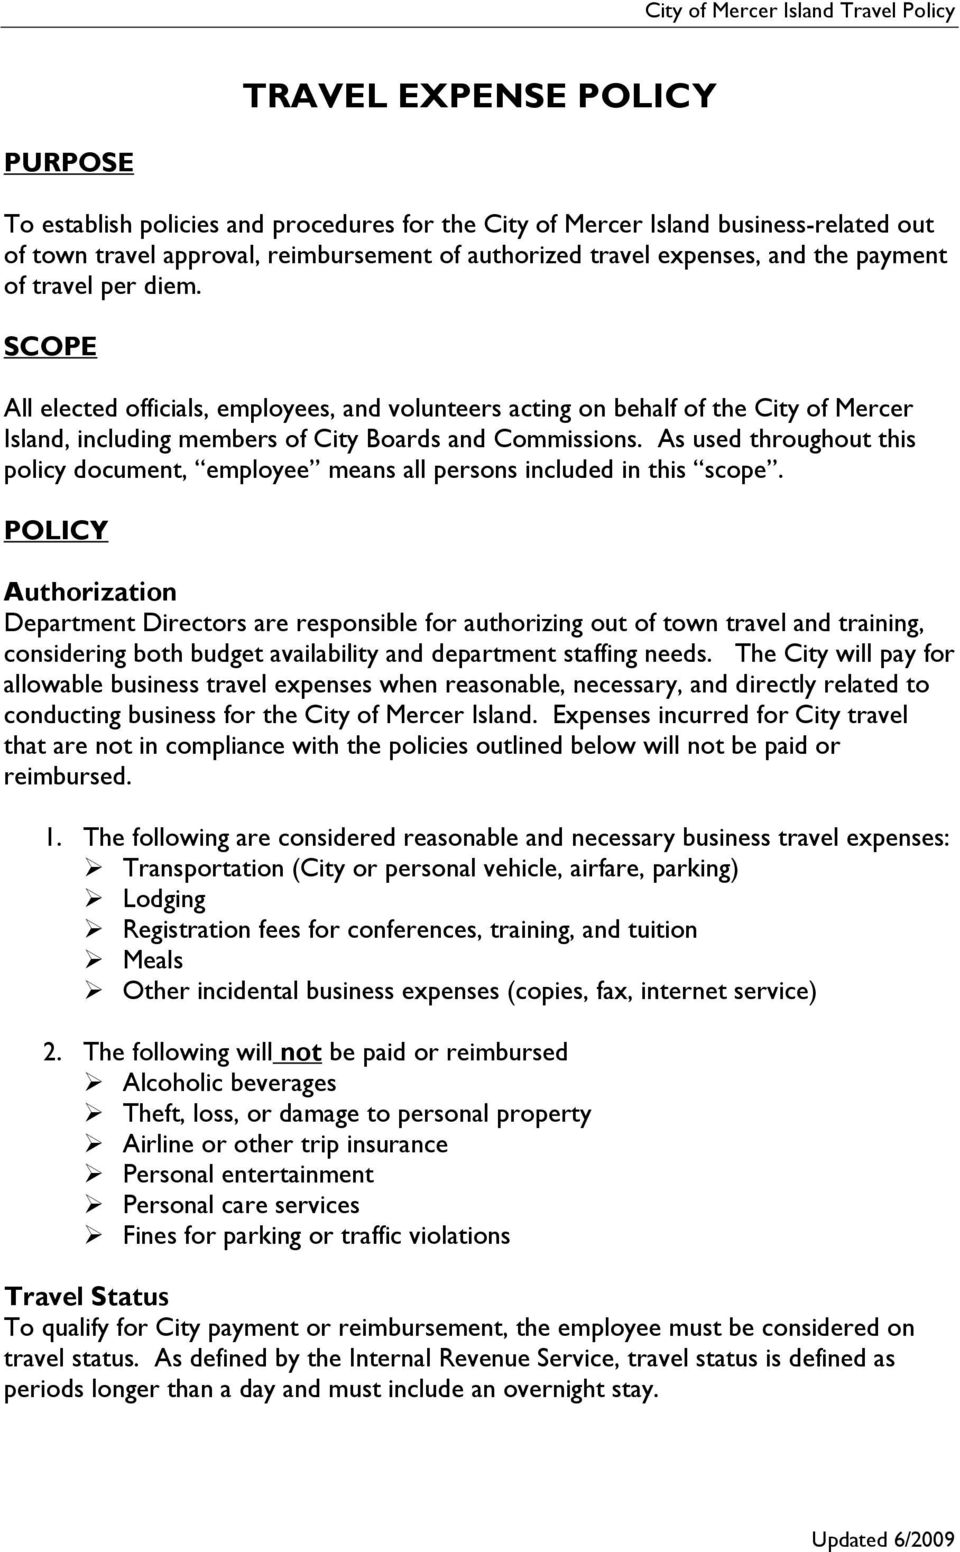 As used throughout this policy document, employee means all persons included in this scope.